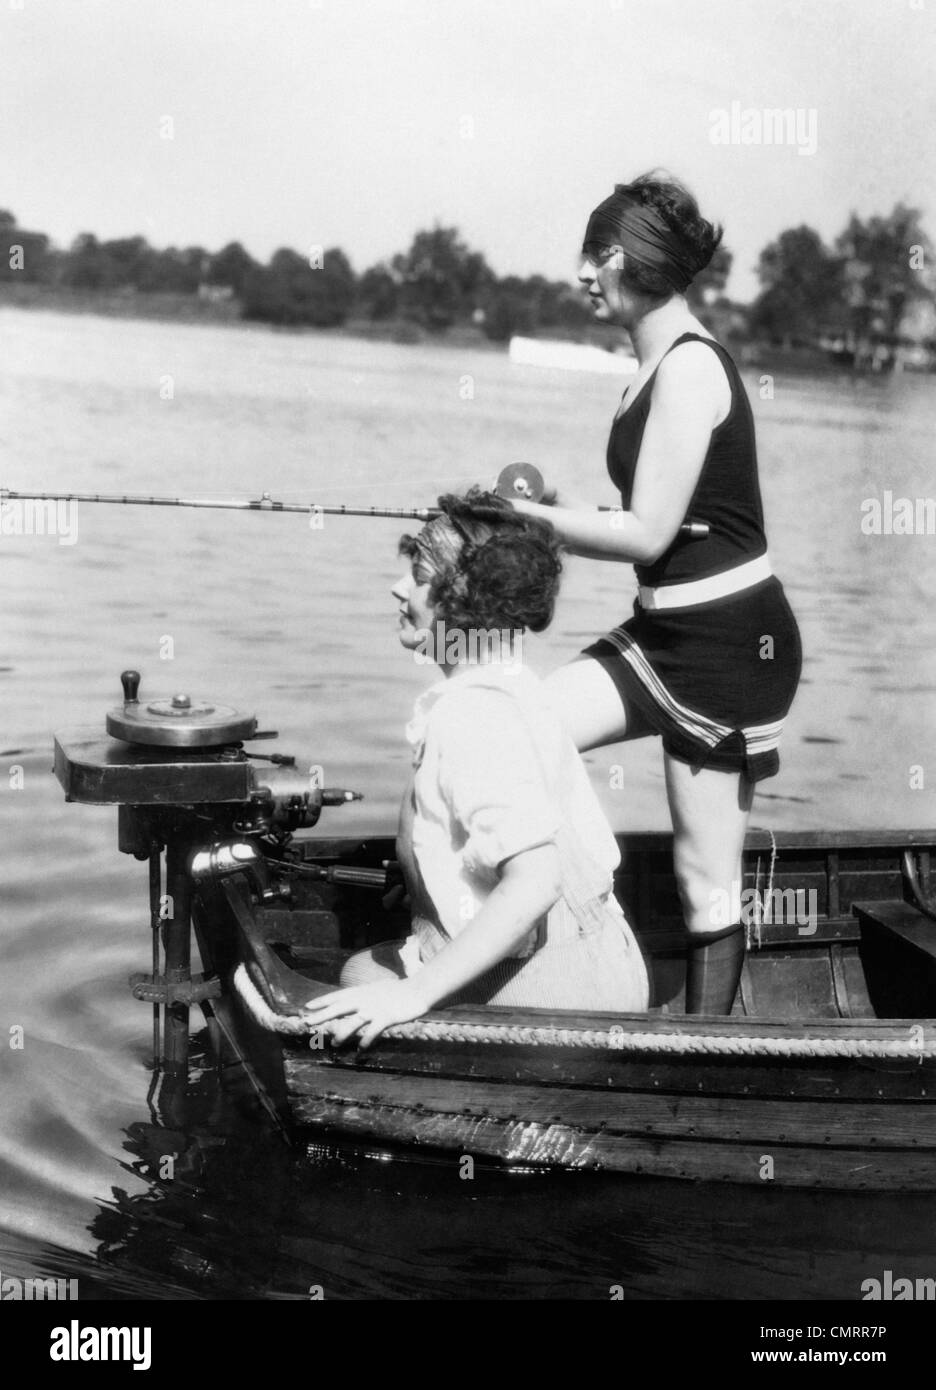 1920s 1930s TWO WOMEN FISHING FROM STERN OF SMALL BOAT WITH MOTOR OUTDOOR ONE WOMAN WI WEARING BATHING SUIT - Stock Image